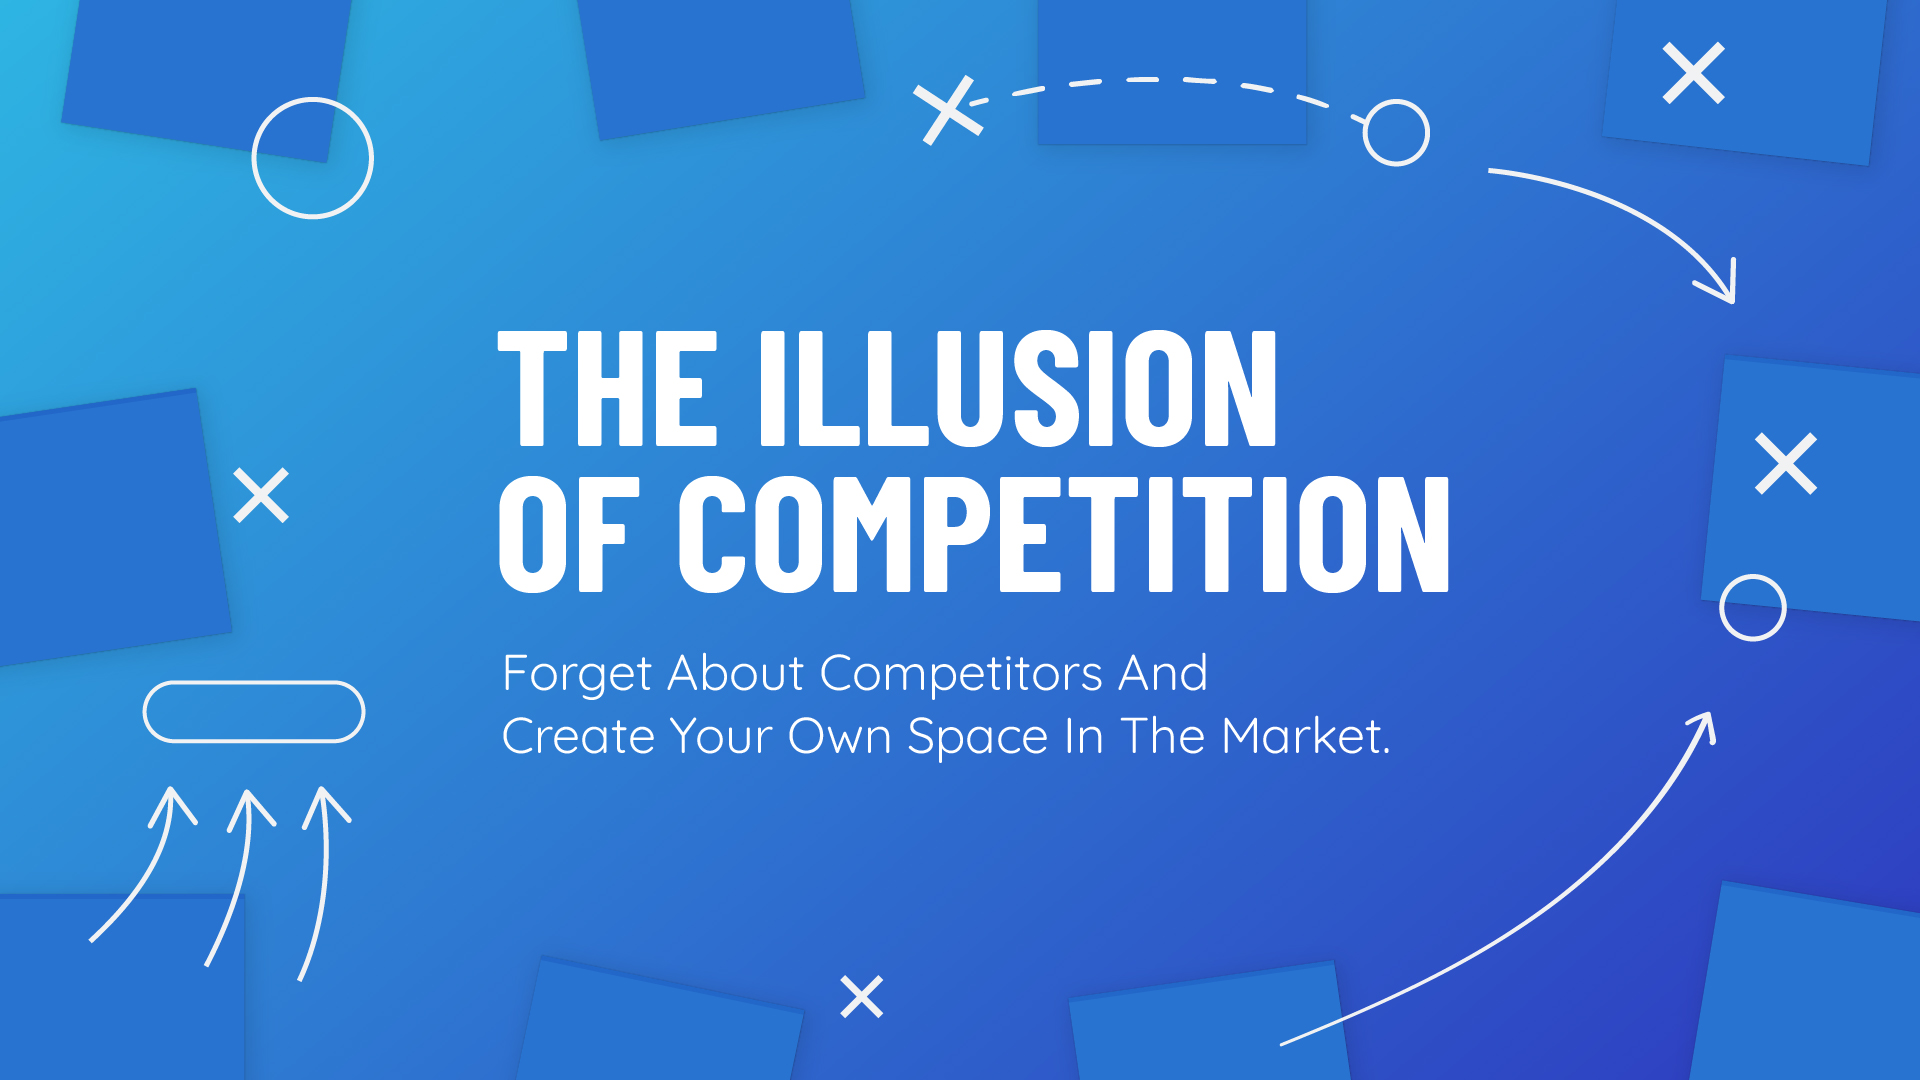 The illusion of competition